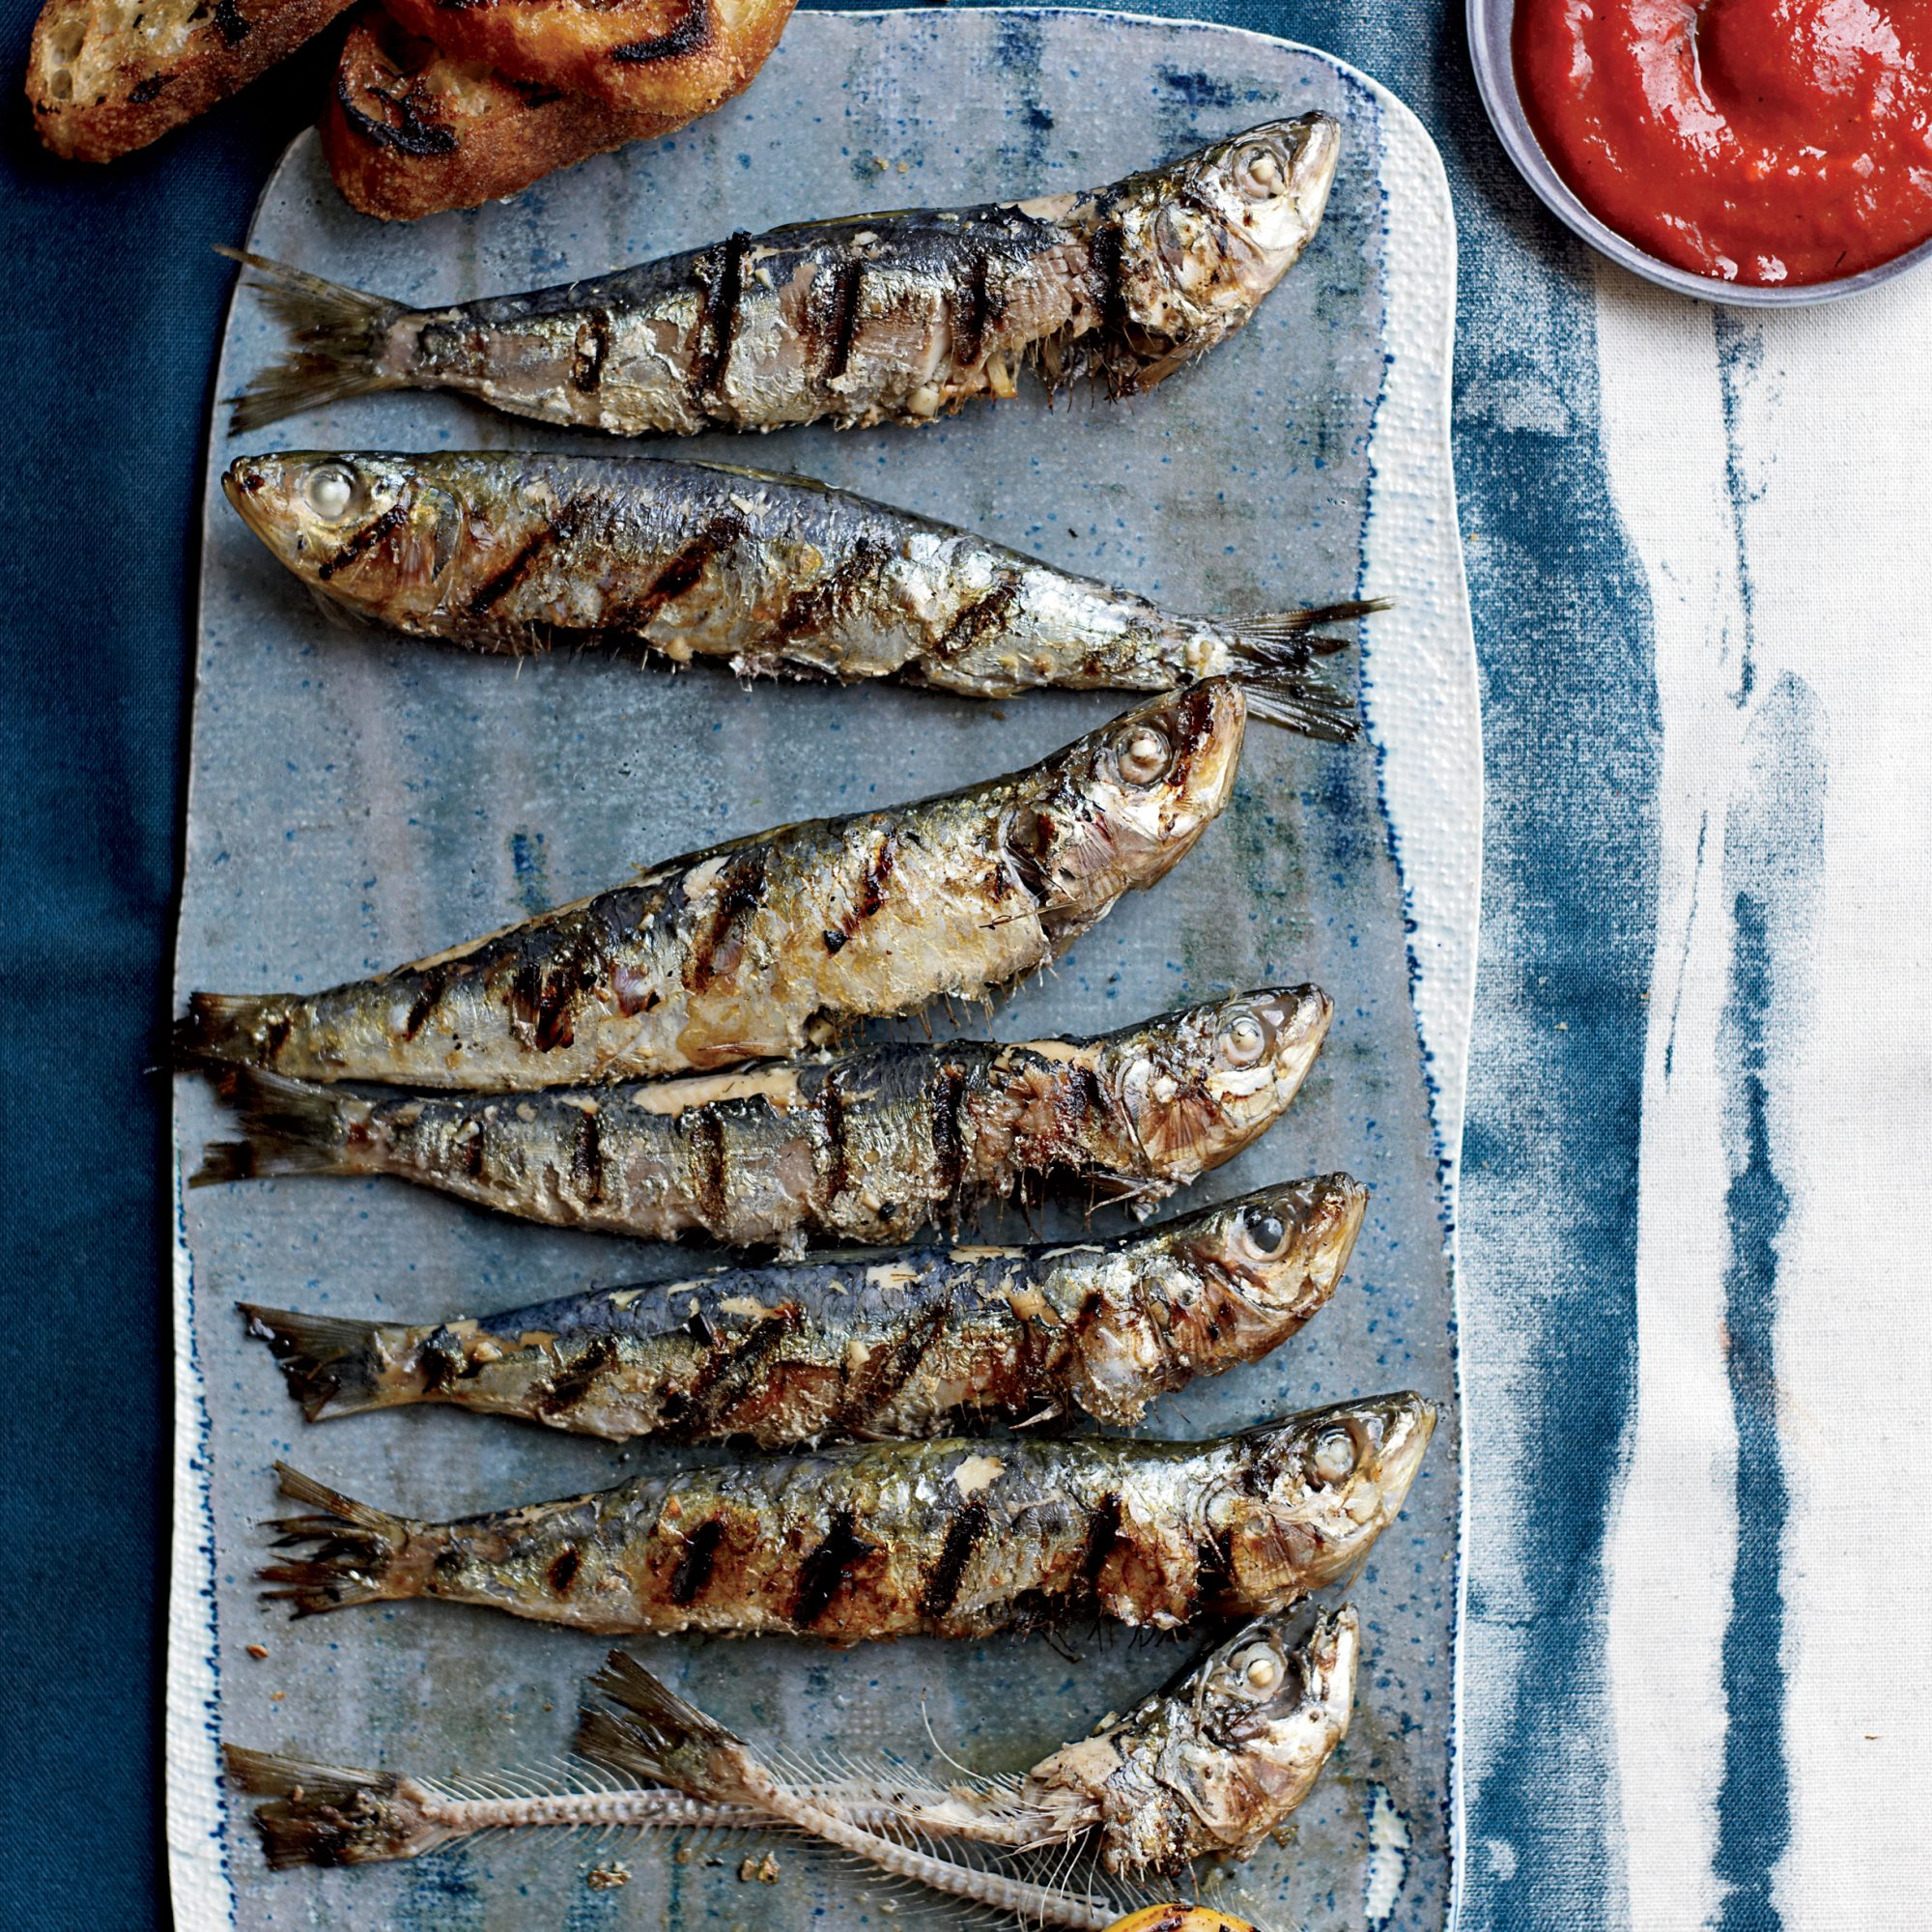 201109-r-grilled-sardines-with-piquillo-pepper-sauce.jpg